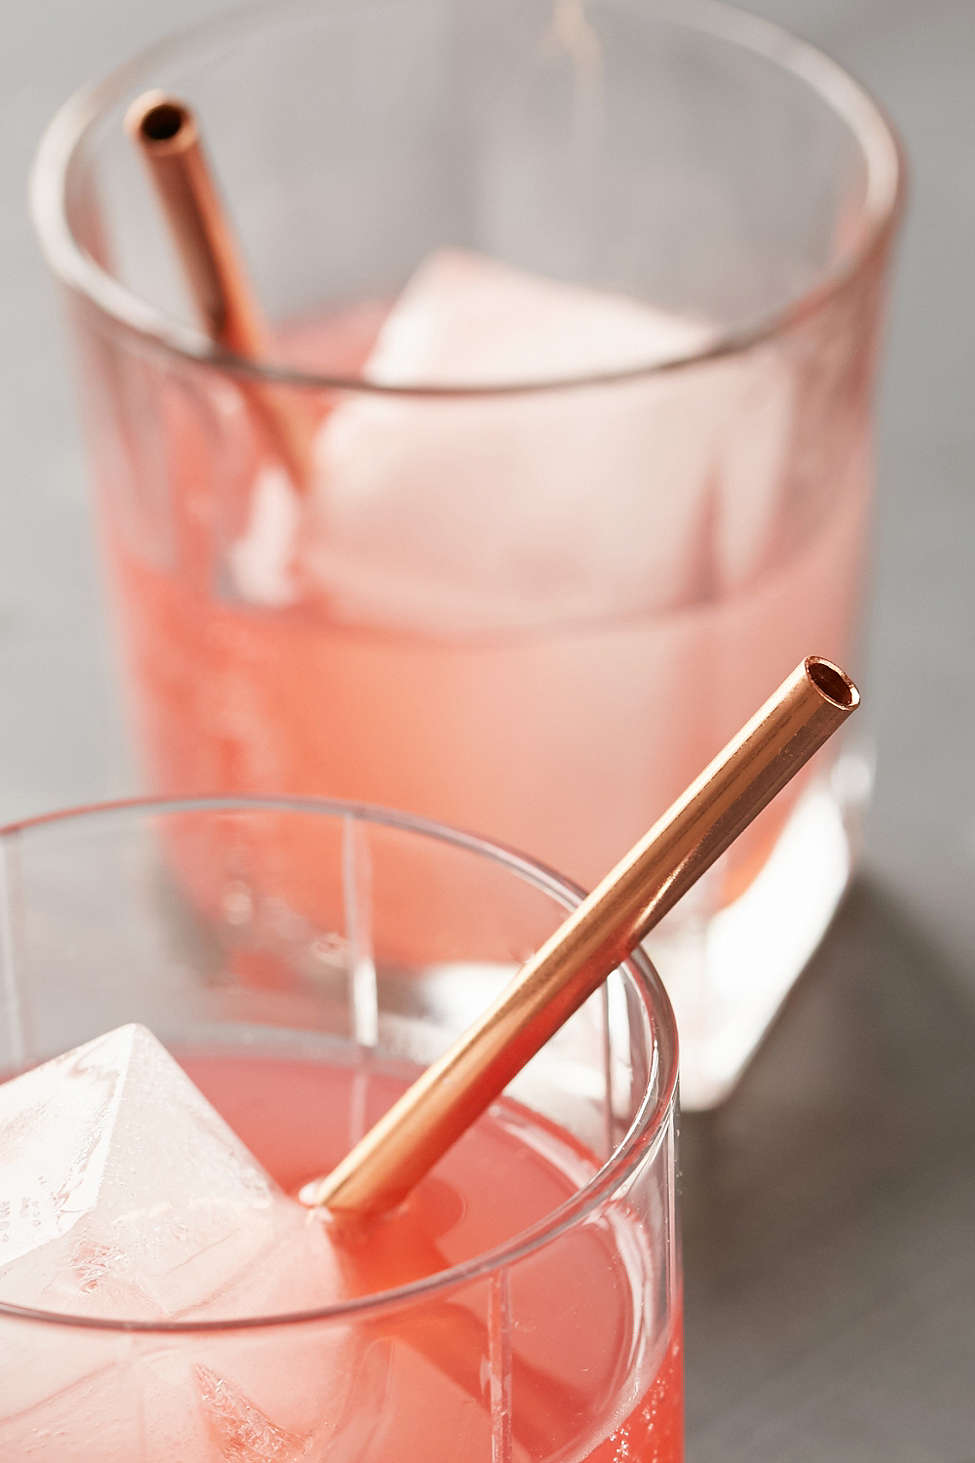 Copper-plated straws from Urban Outfitters